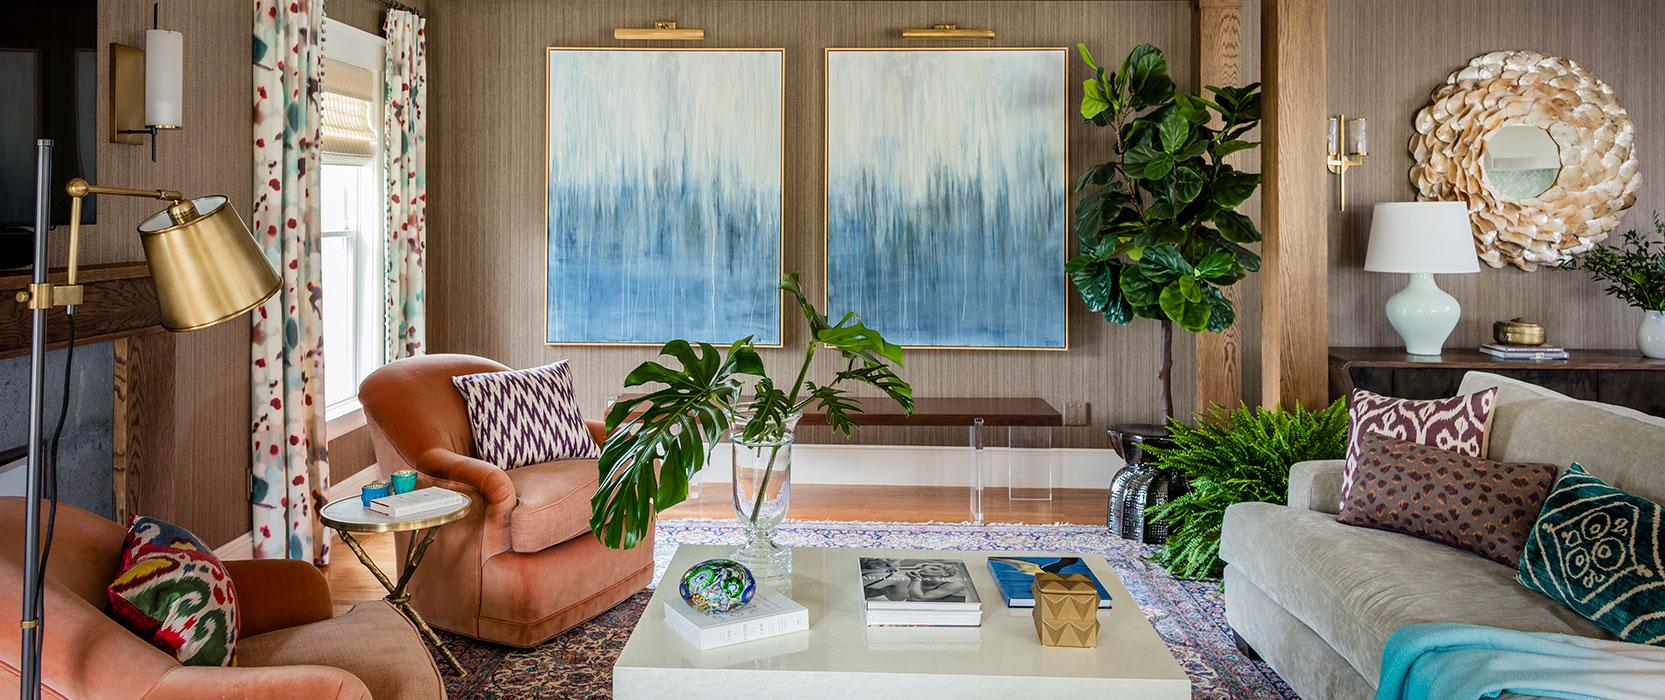 colorful living room design with wood paneling and blue abstract art on the walls